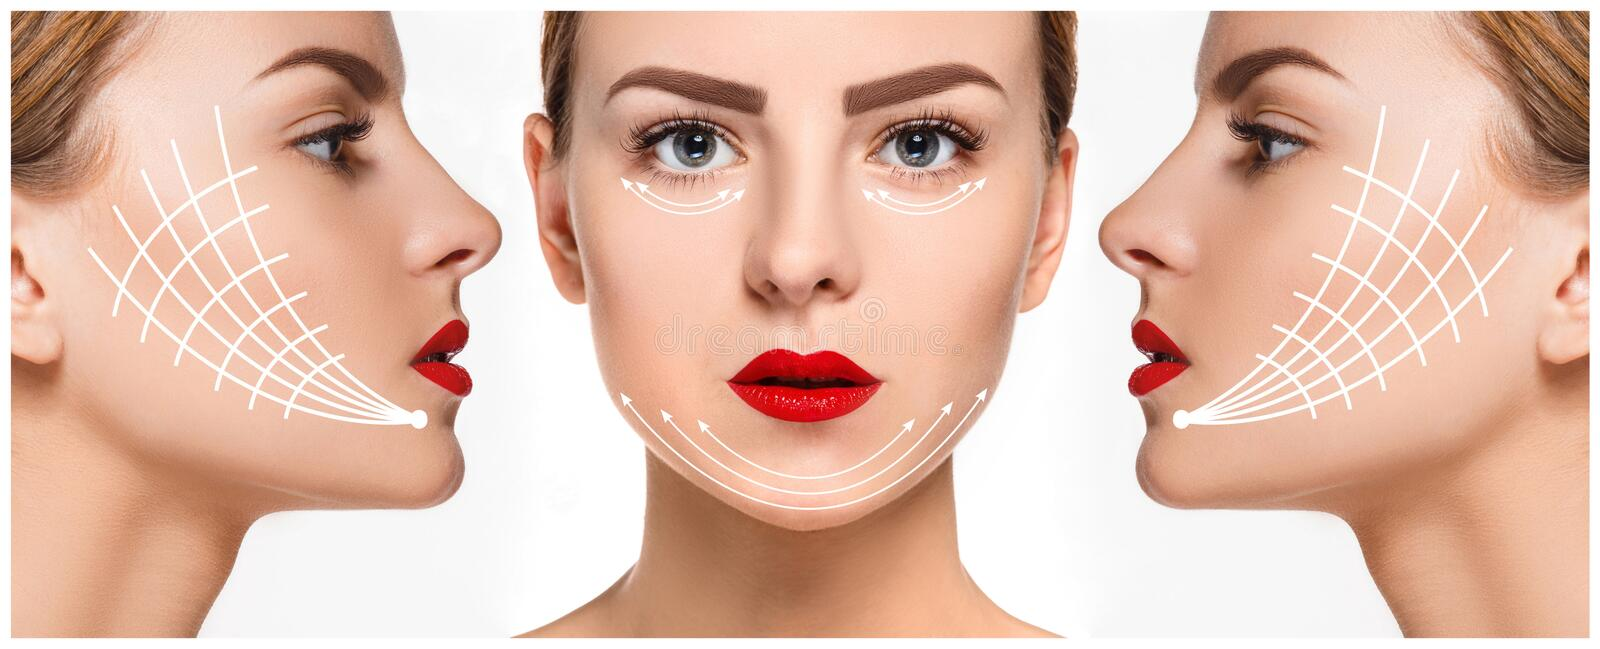 The young female face. Antiaging and thread lifting concept stock photos